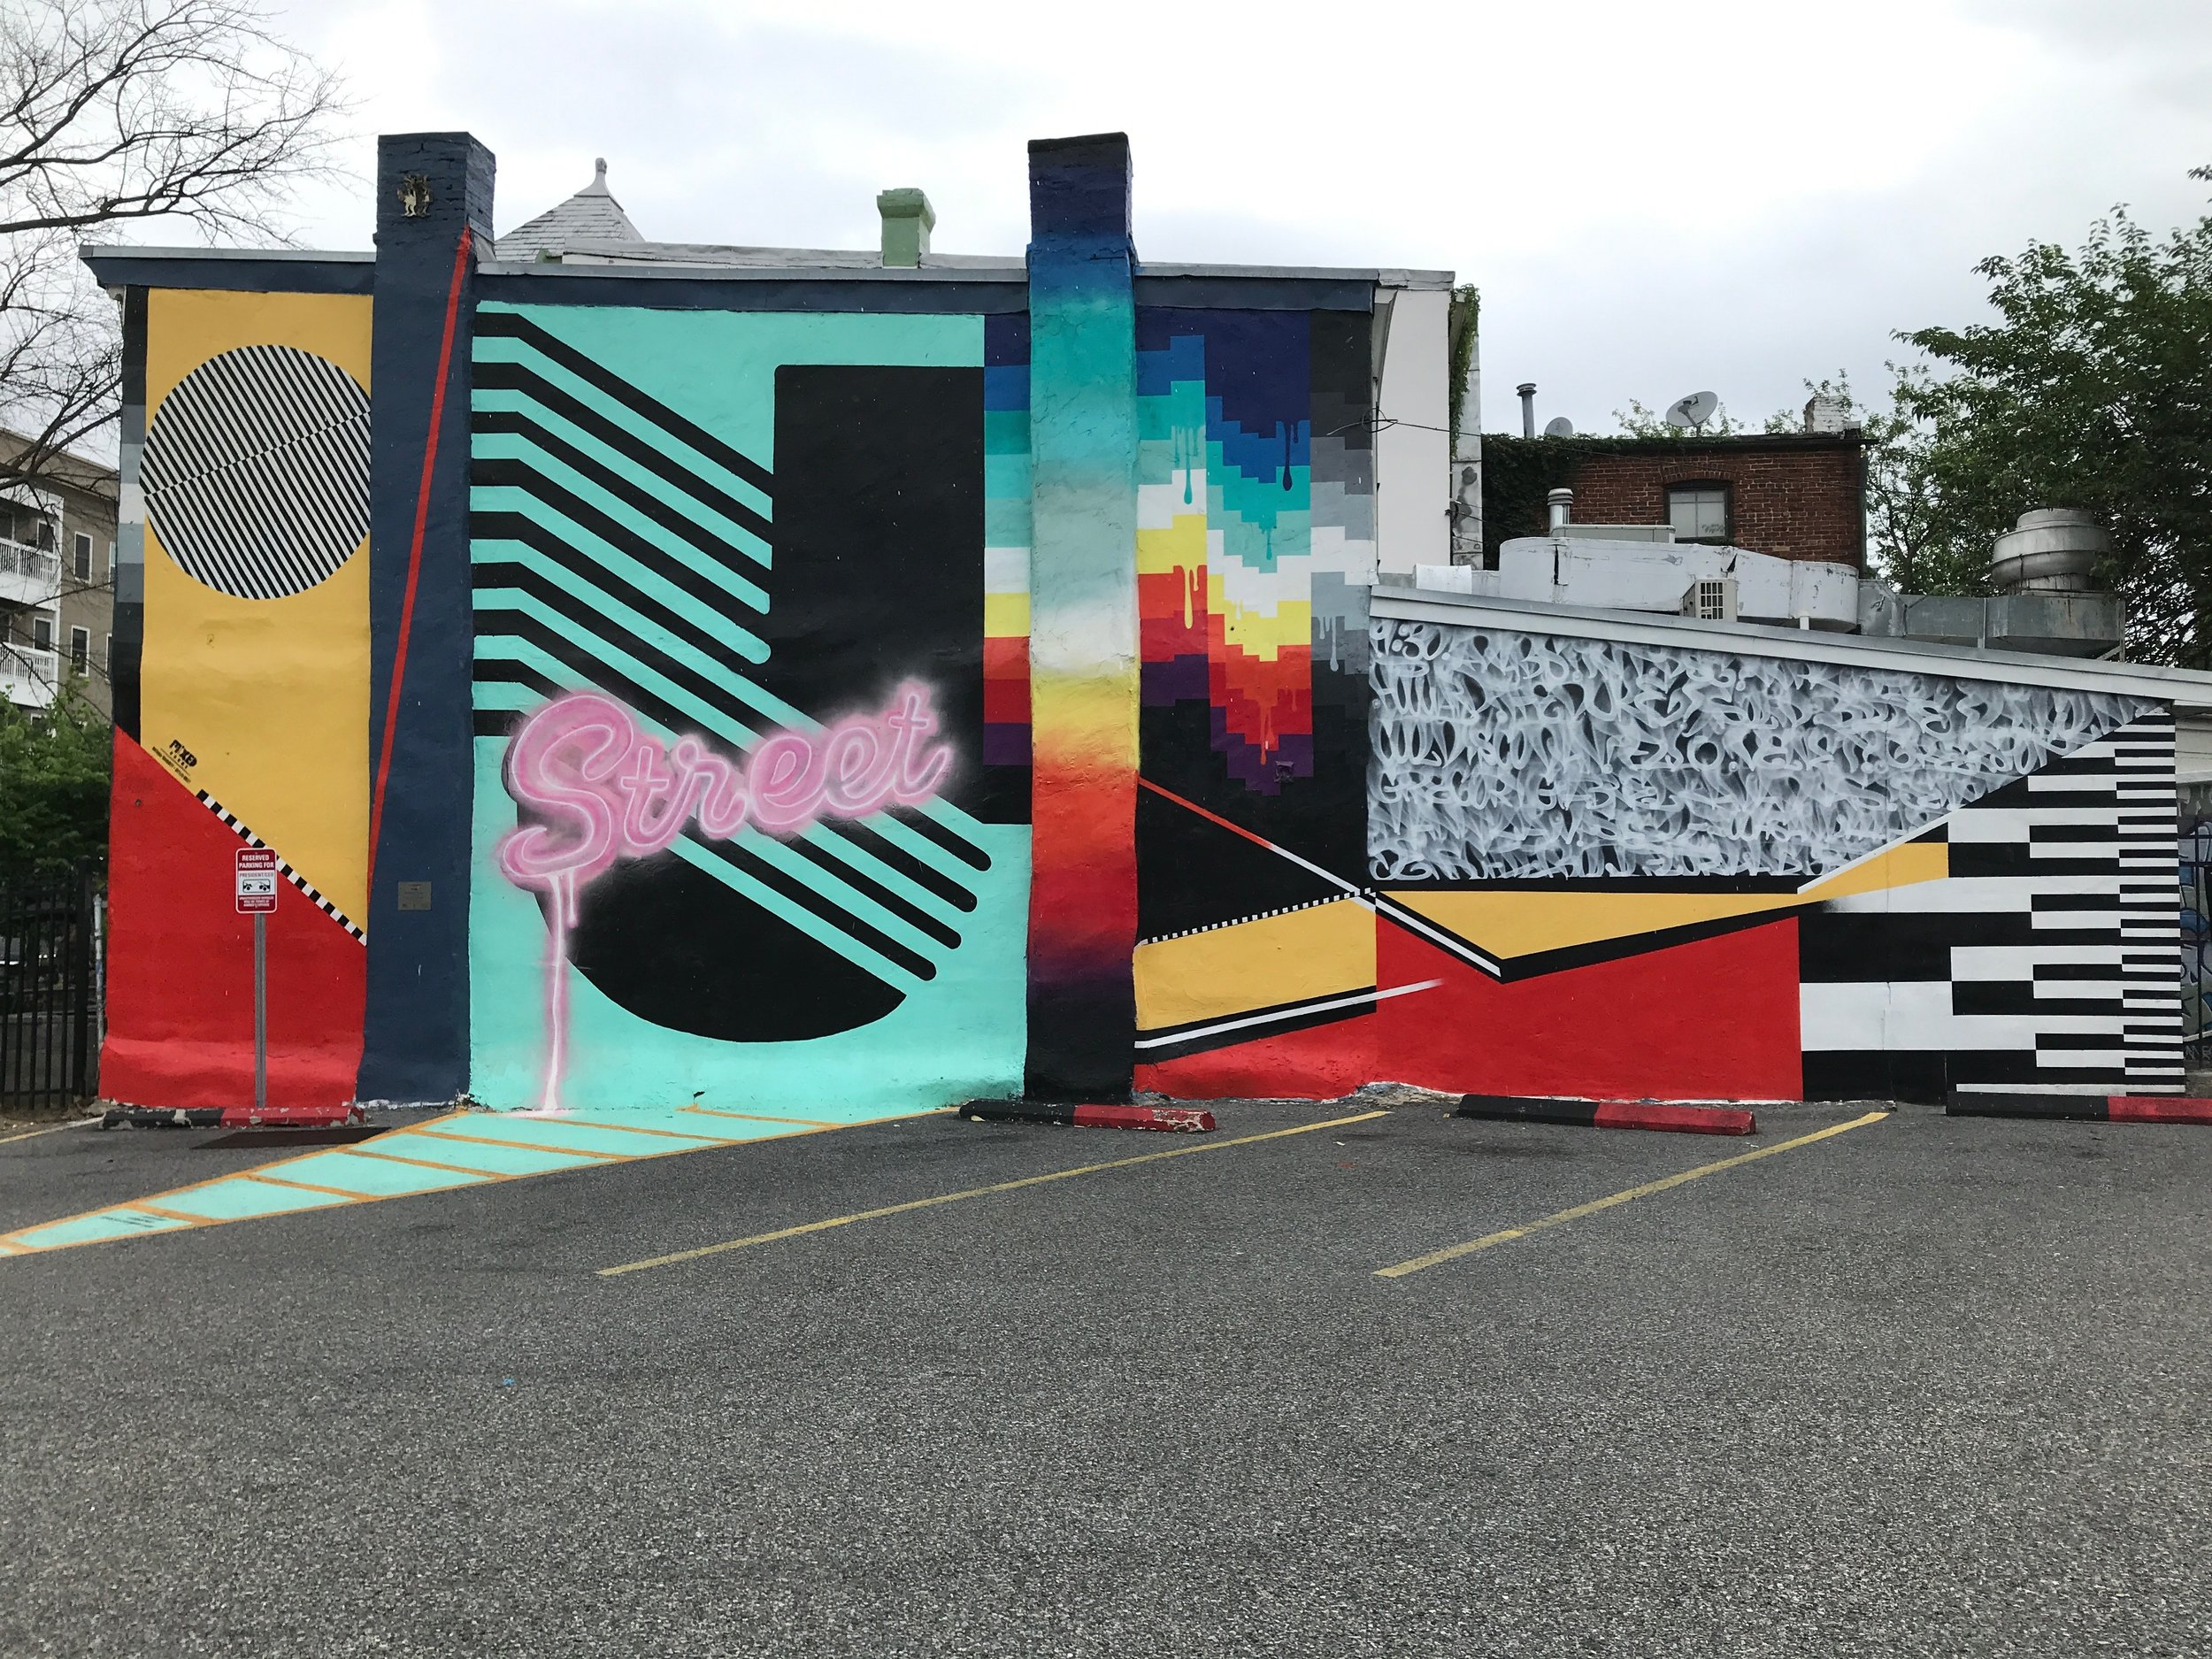 U Street Mural in Washington, D.C. | Best Instagram Murals